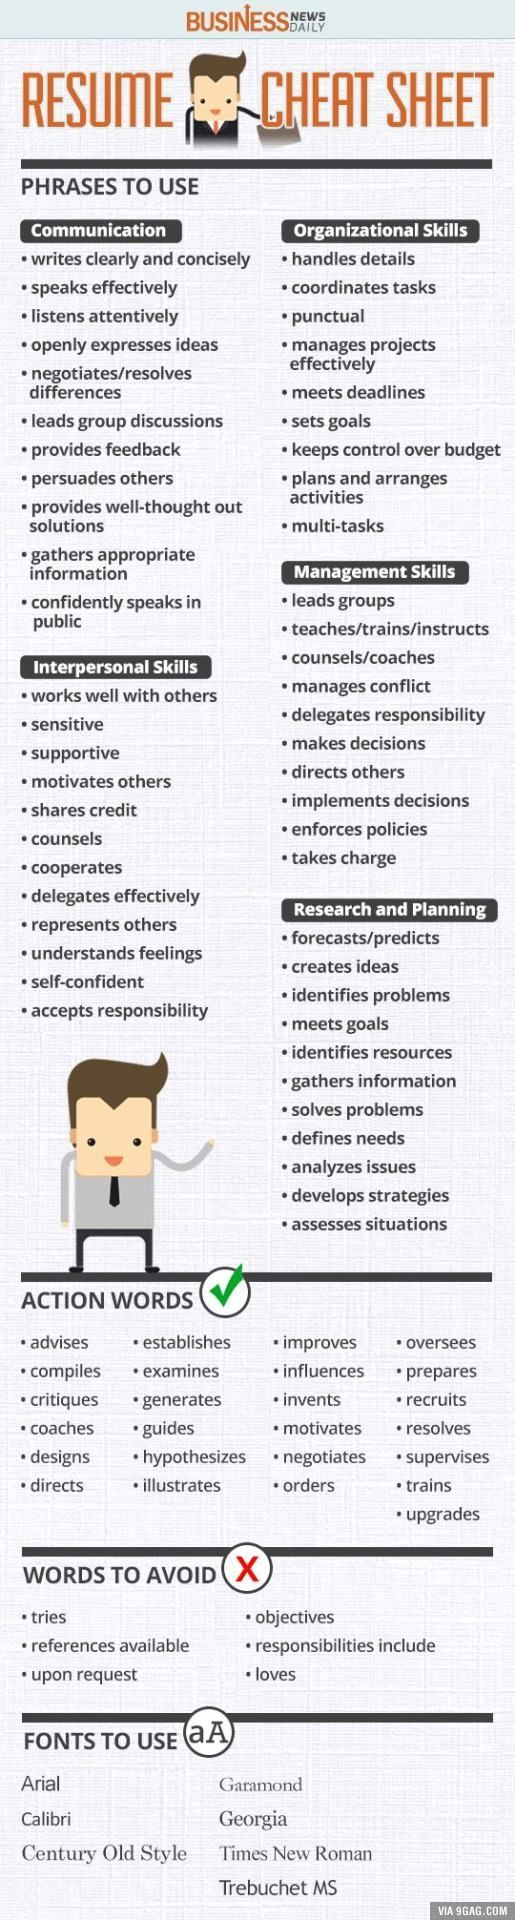 Resume Phrases To Use Entrancing Thank Me Later  Pinterest  Resume Cover Letter Examples Cover .